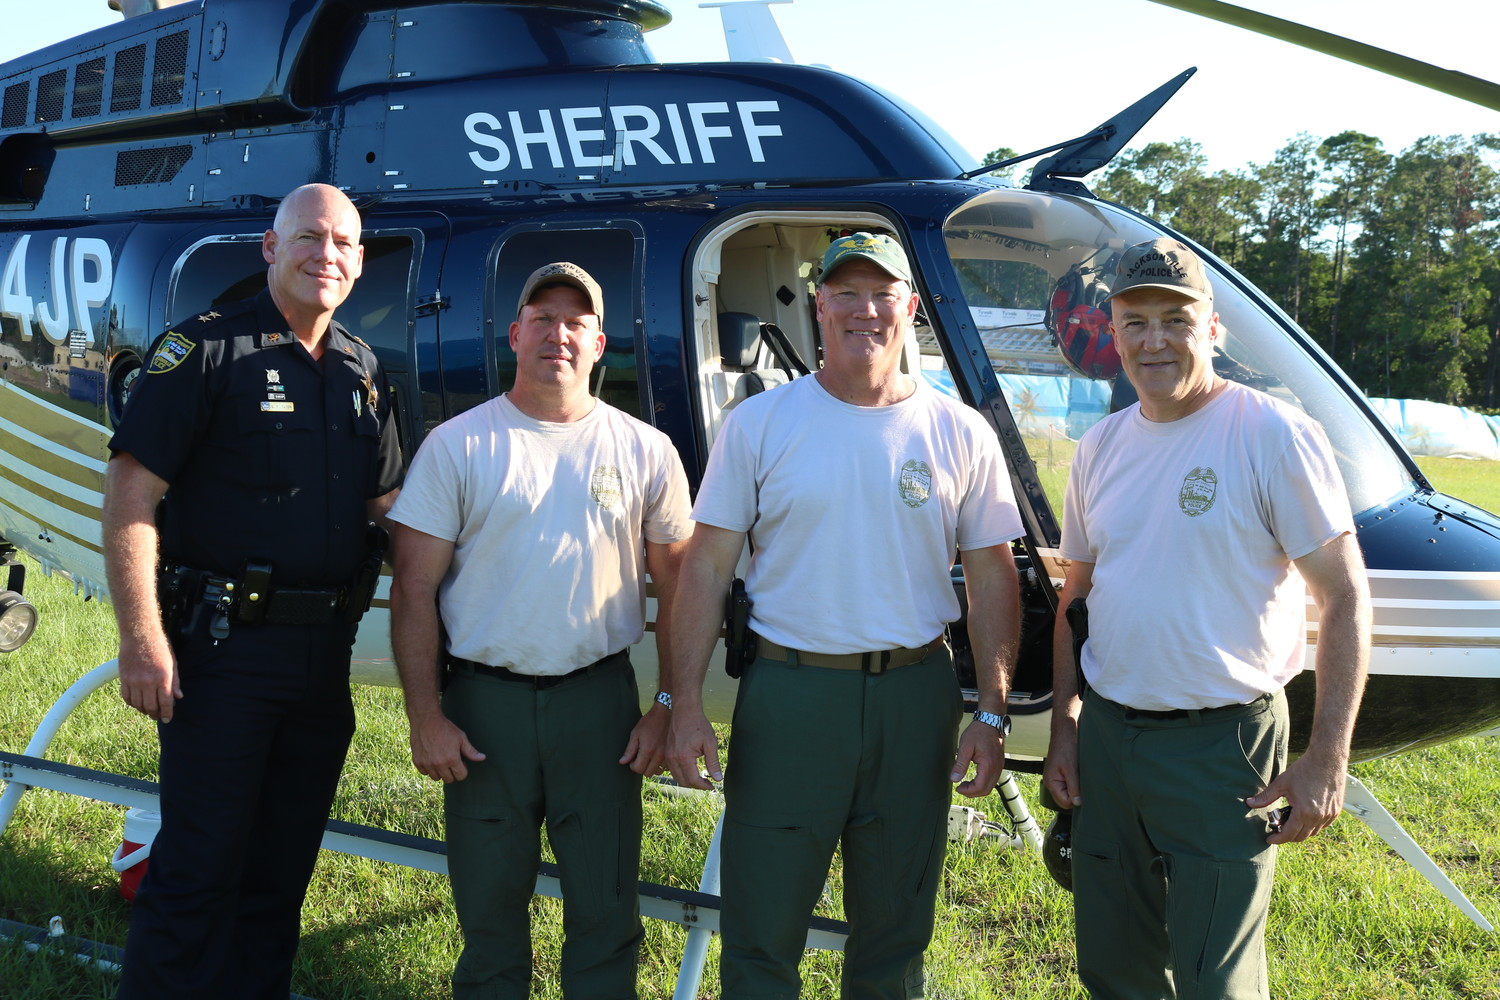 Don Tuten, Mark Newman, Carl Oder and Louis Ferreira of the Jacksonville Sheriff's Office gather in front of a helicopter at Nocatee's Community Resource Day on Aug. 7.